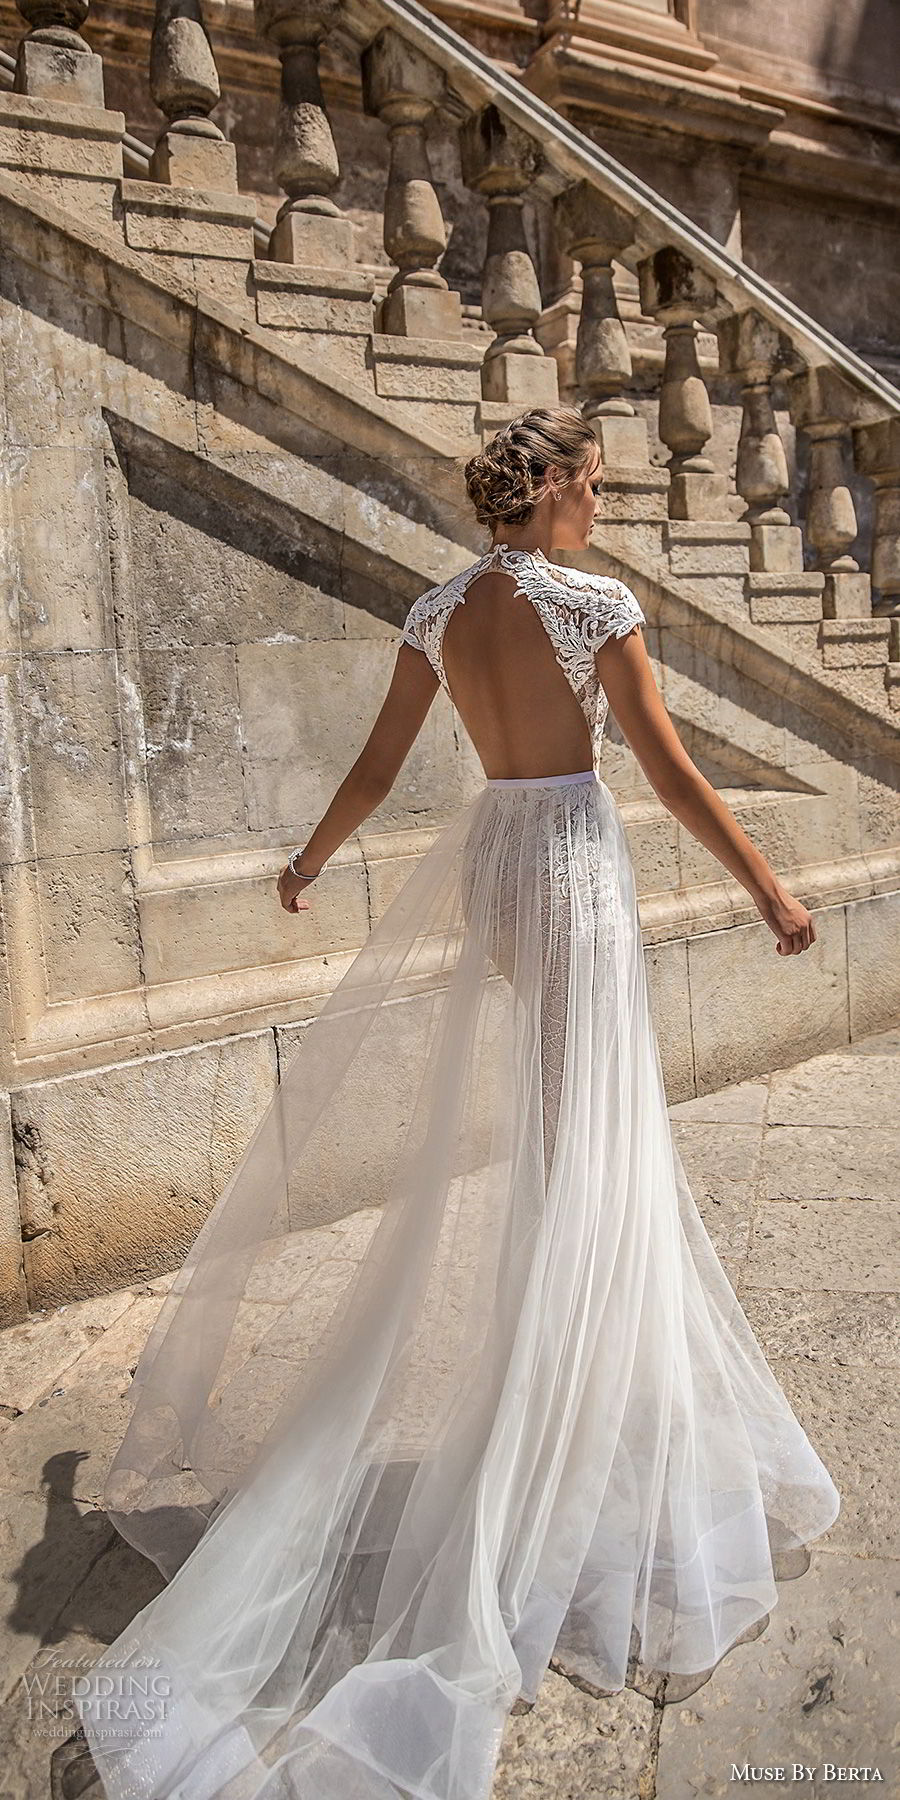 muse-berta-2018-bridal-cap-sleeves-high-neck-deep-plunging-sweetheart-neckline-heavily-embellished-bodice-tulle-skirt-sexy-romantic-a-line-wedding-dress-keyhole-back (2)